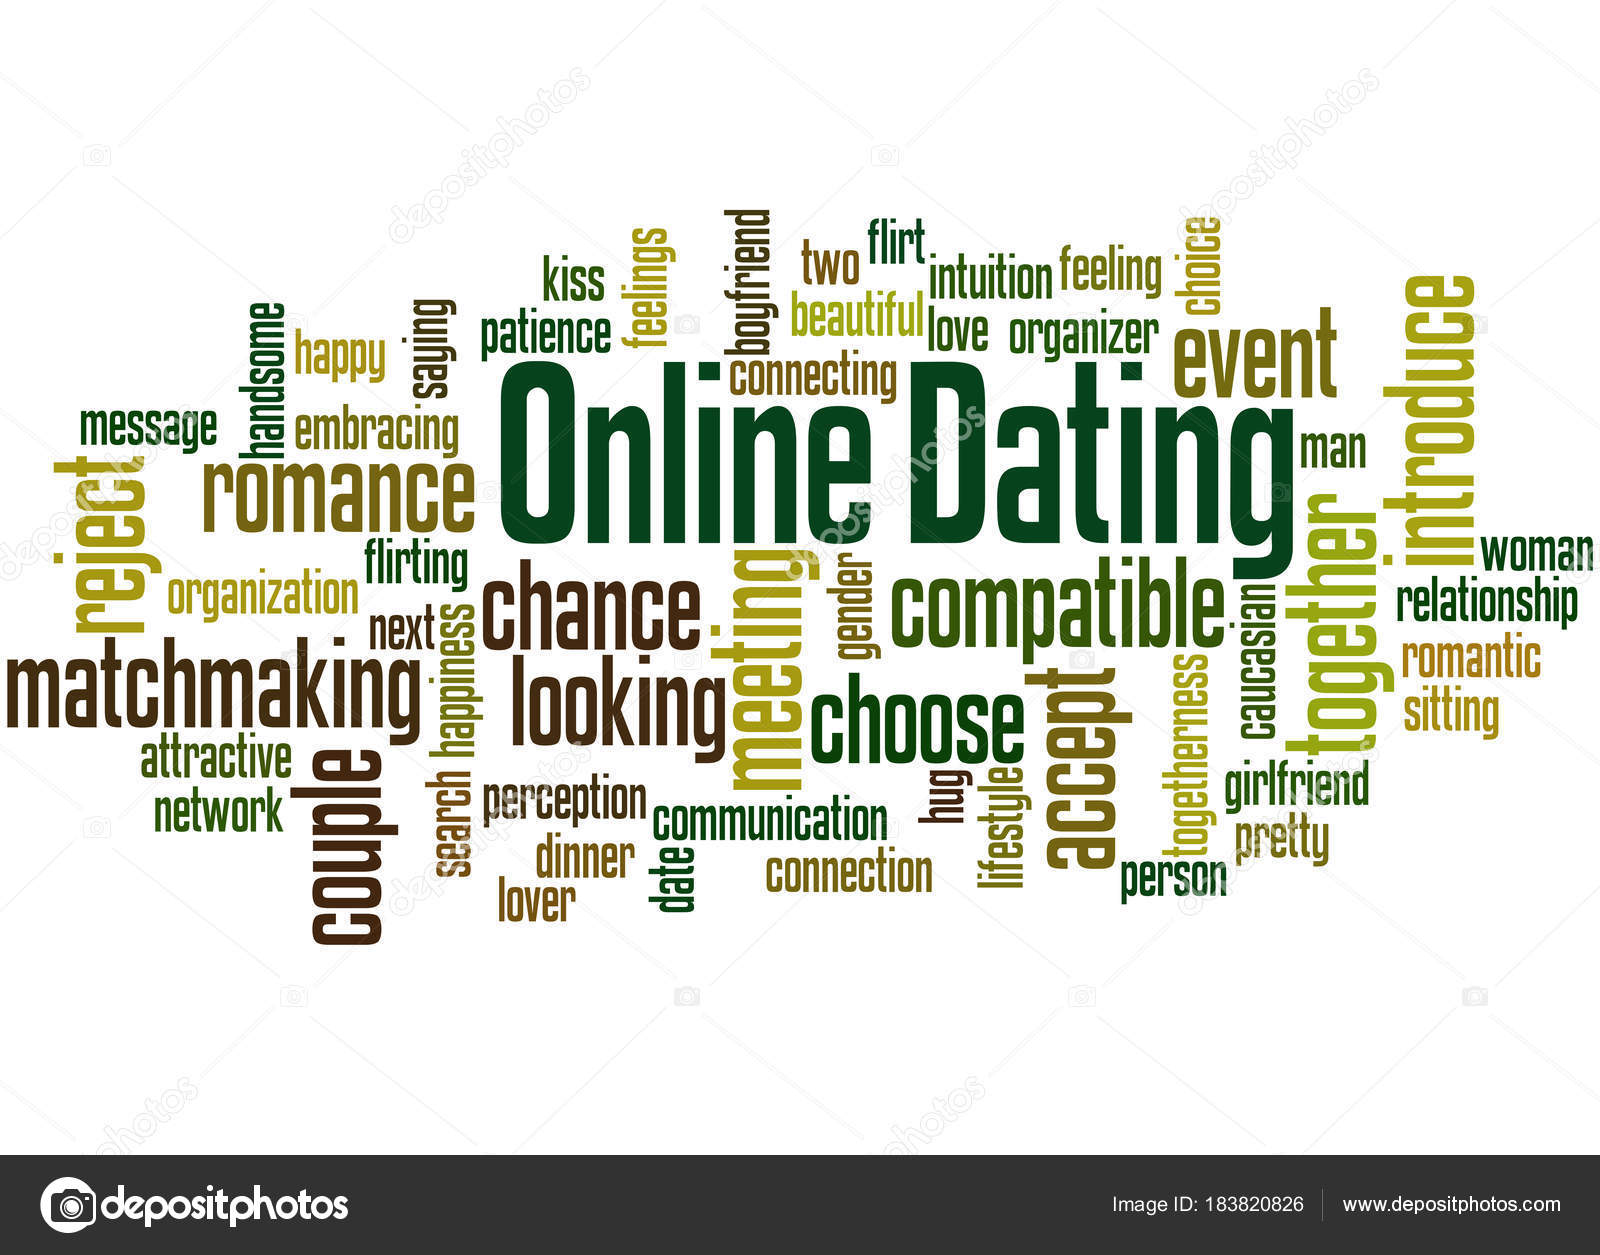 teen-dating-word-cloud-site-pornlivenews